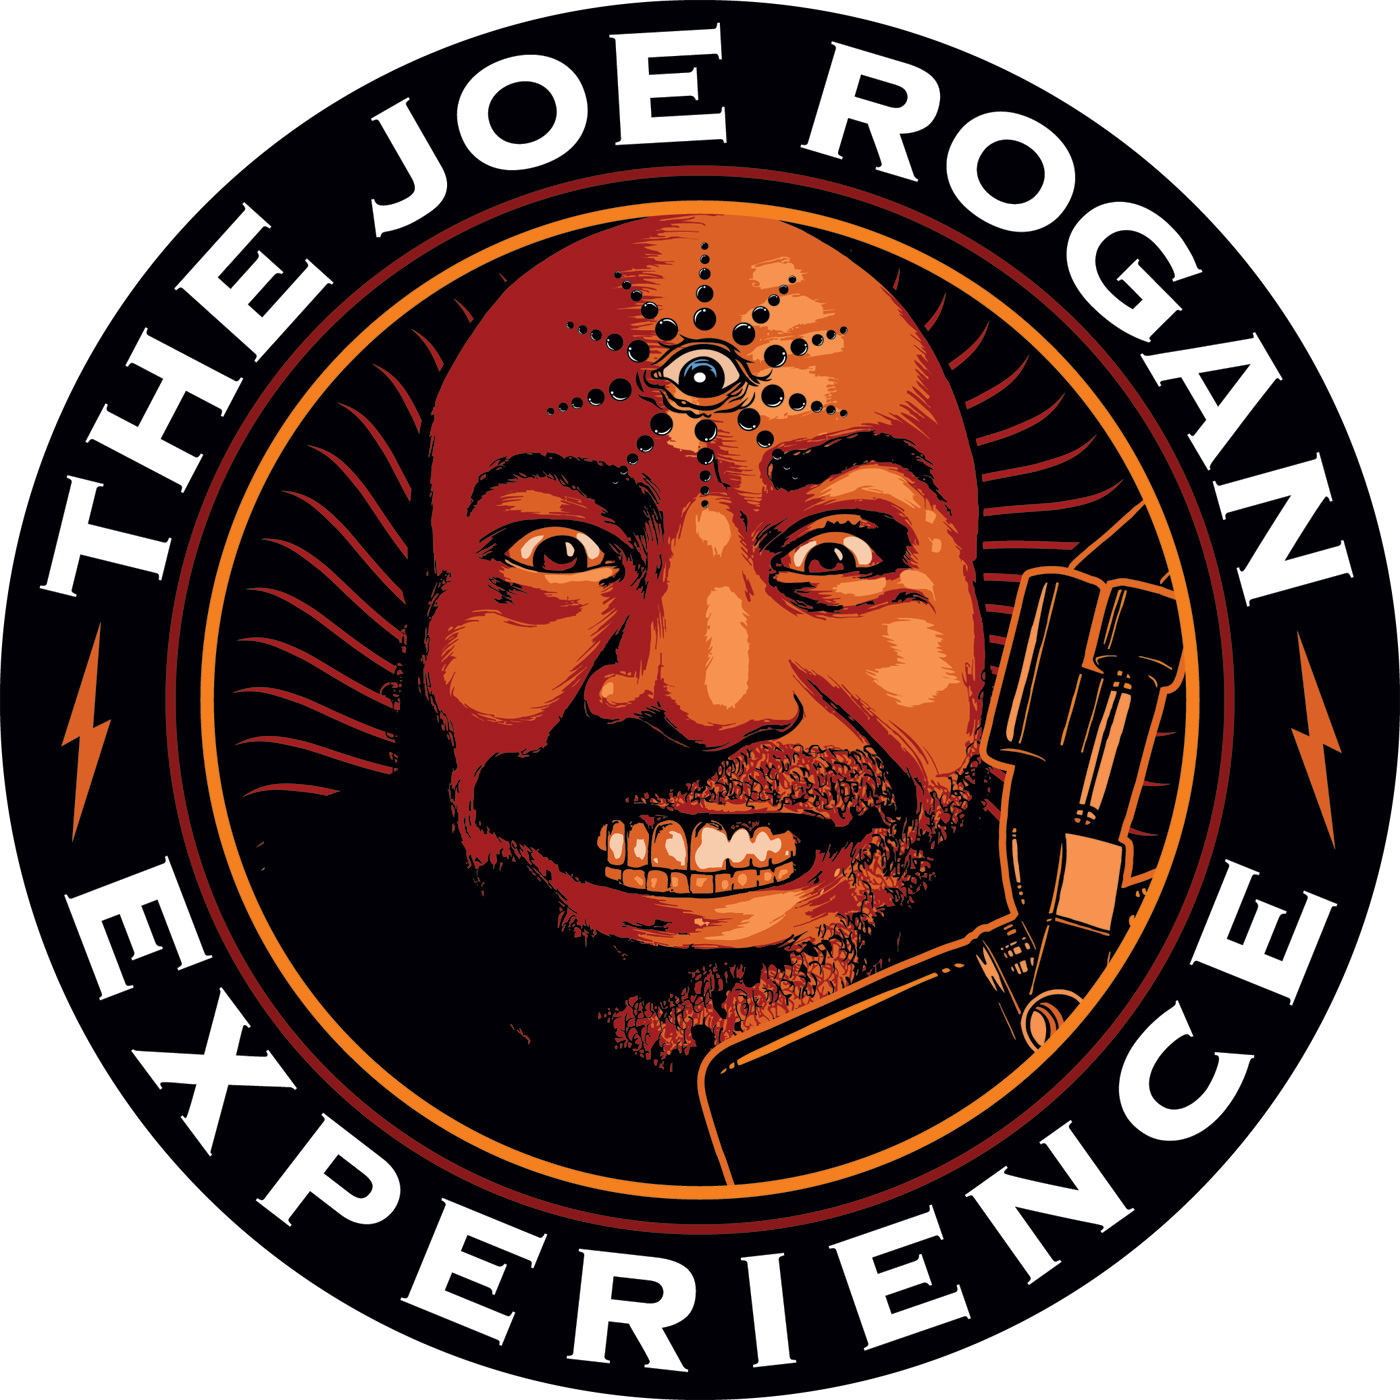 The Joe Rogan Experience PODCAST #20 - Tom Segura